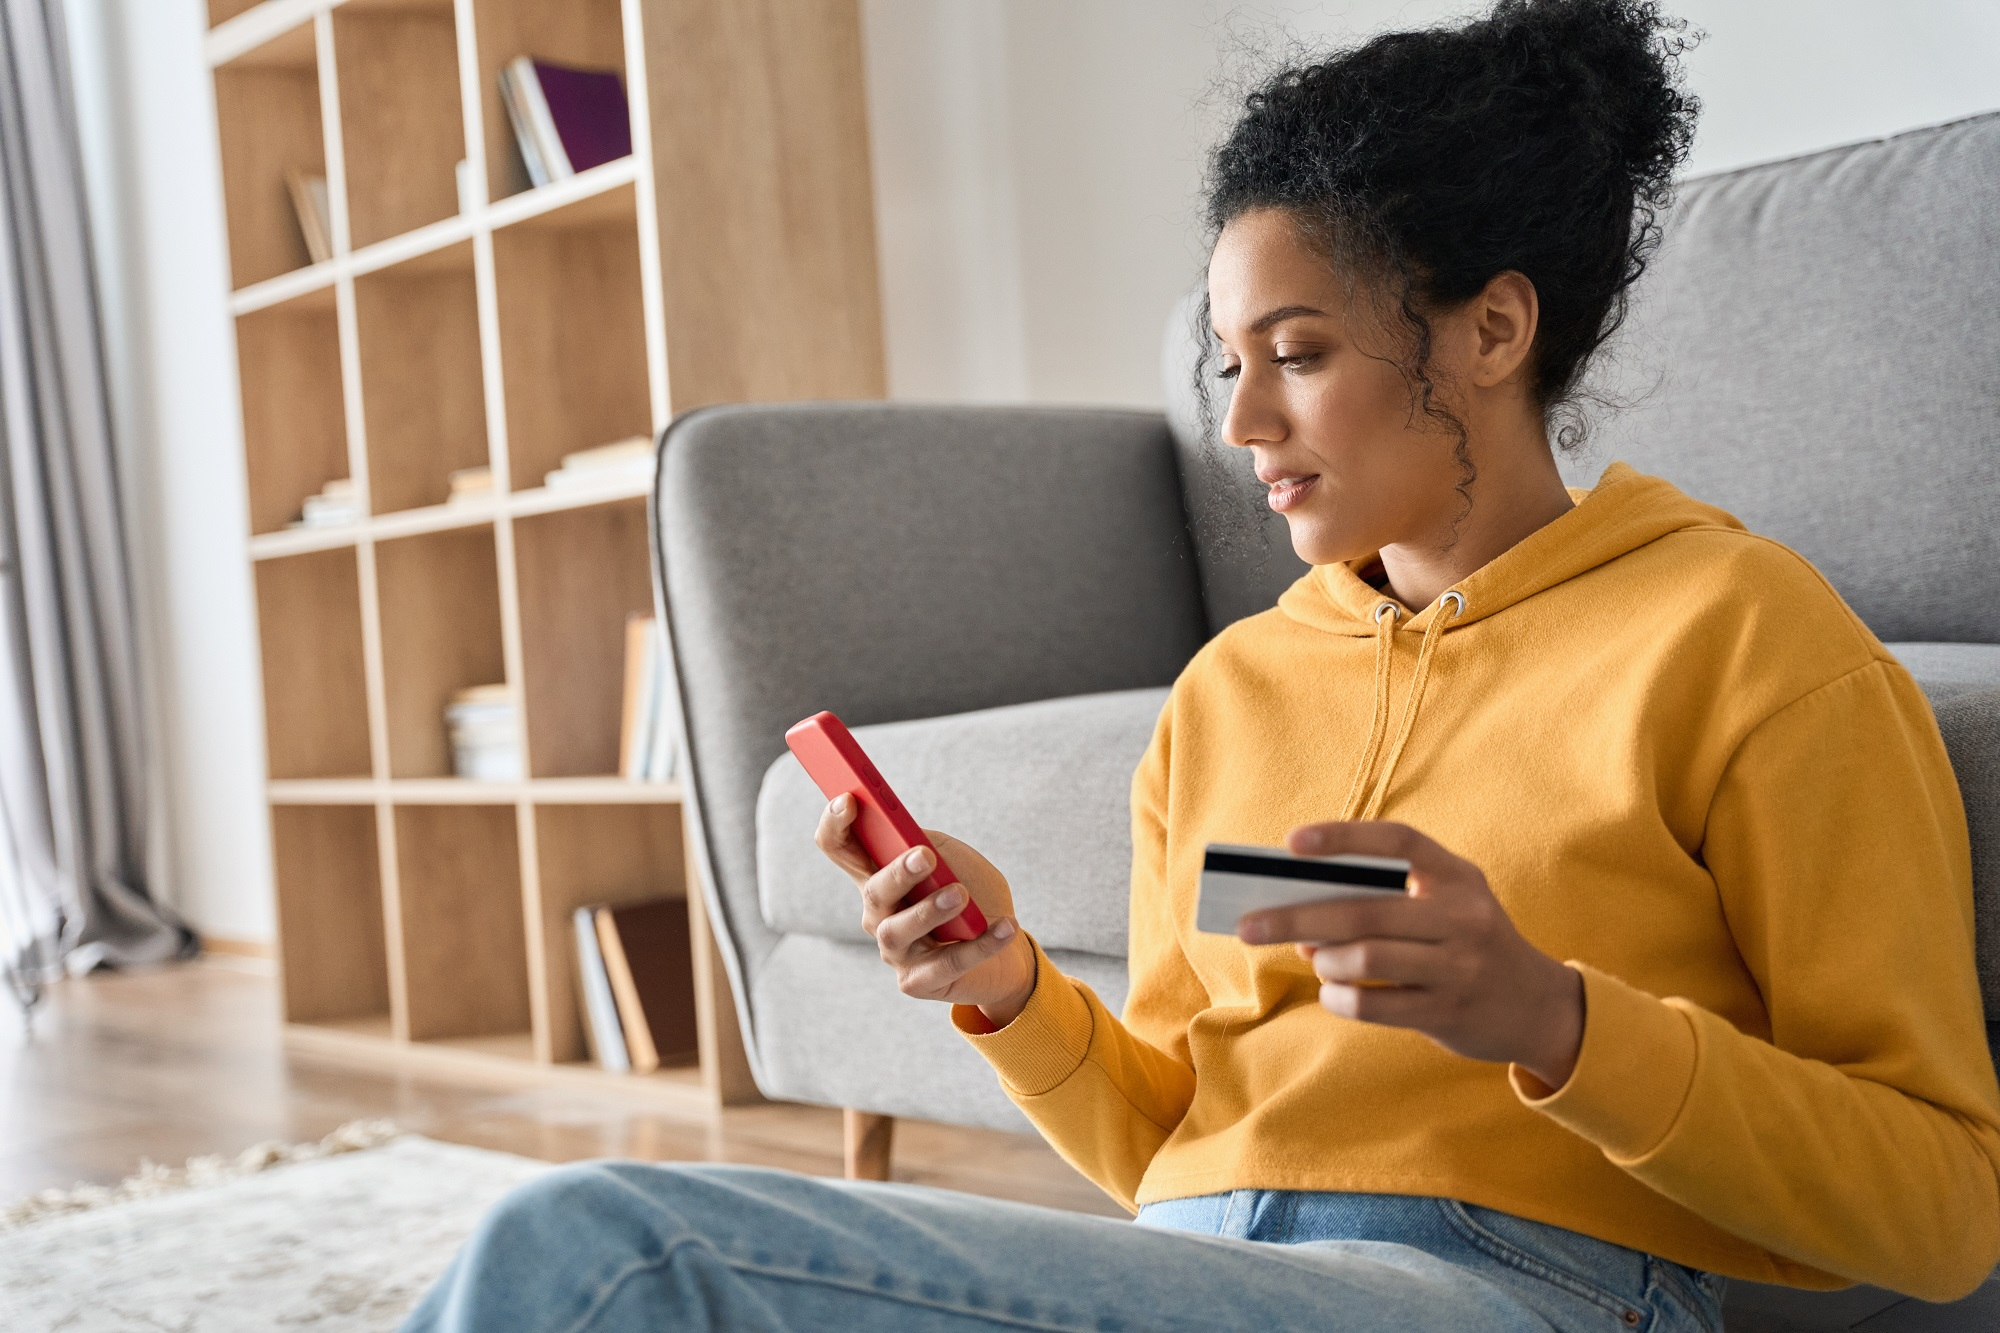 Woman sits on the floor in the living room making an online donation to charity on her phone